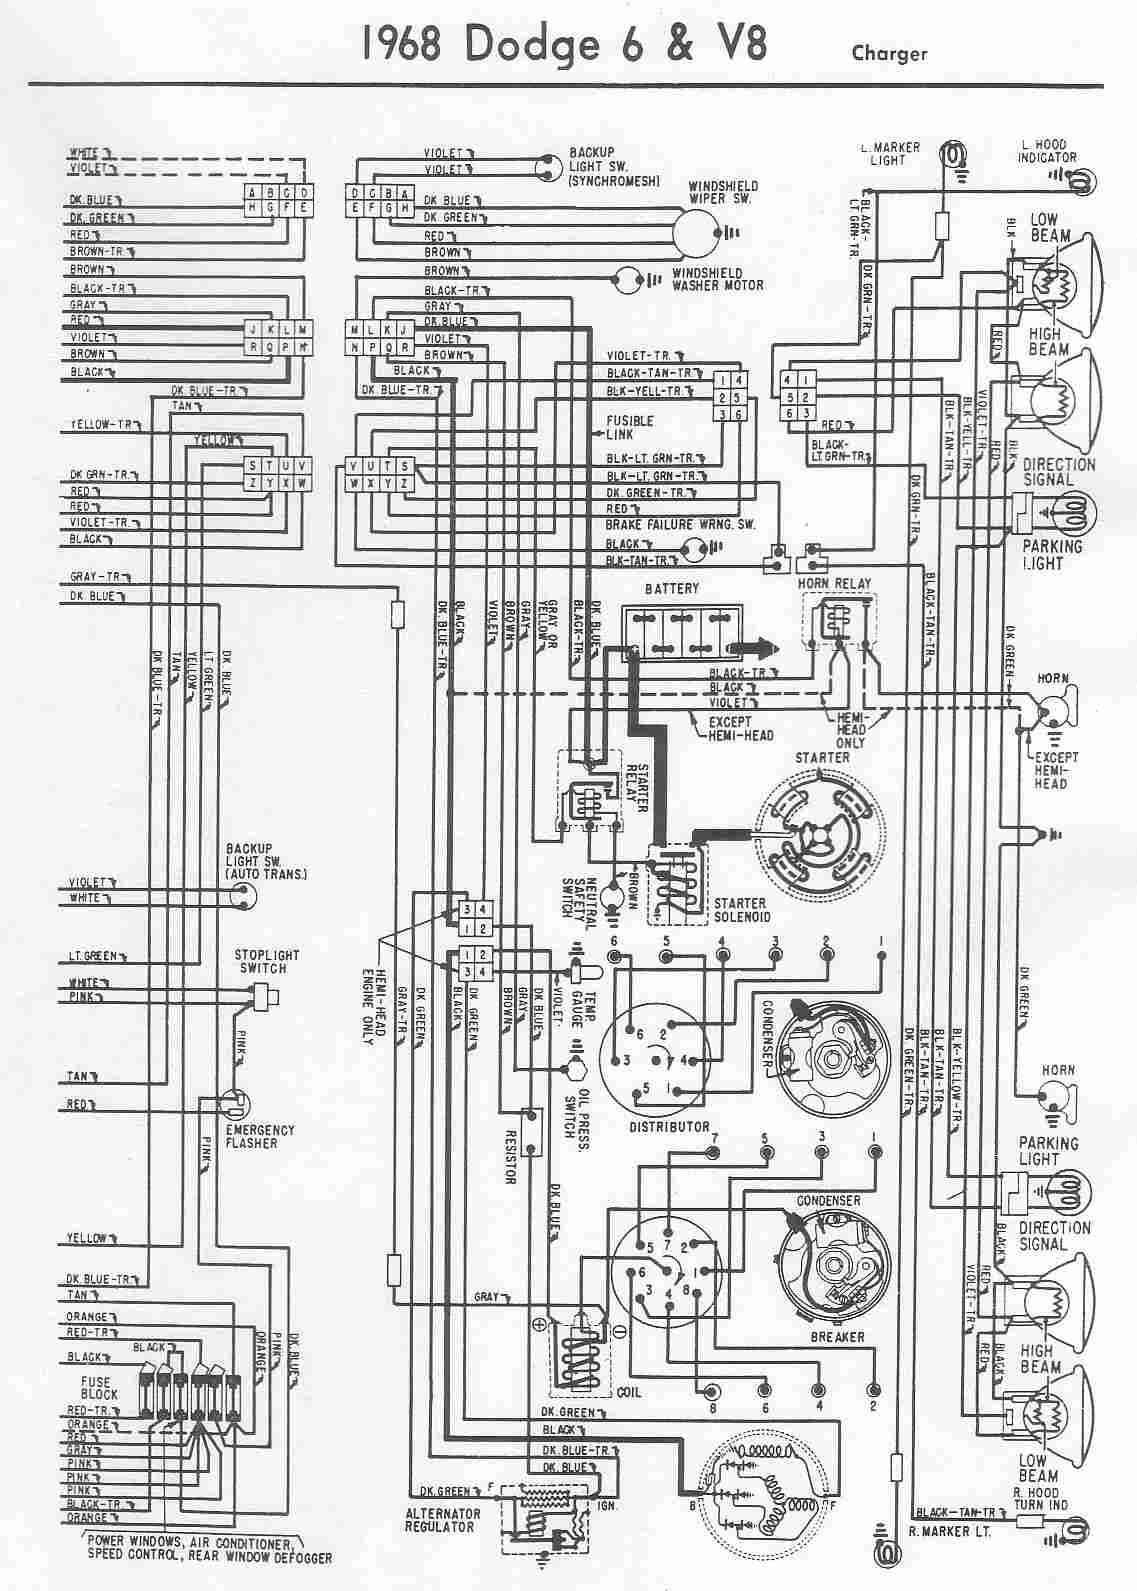 Dodge Car Manuals Wiring Diagrams Pdf Fault Codes 2004 Silver Fuse Box Diagram Download